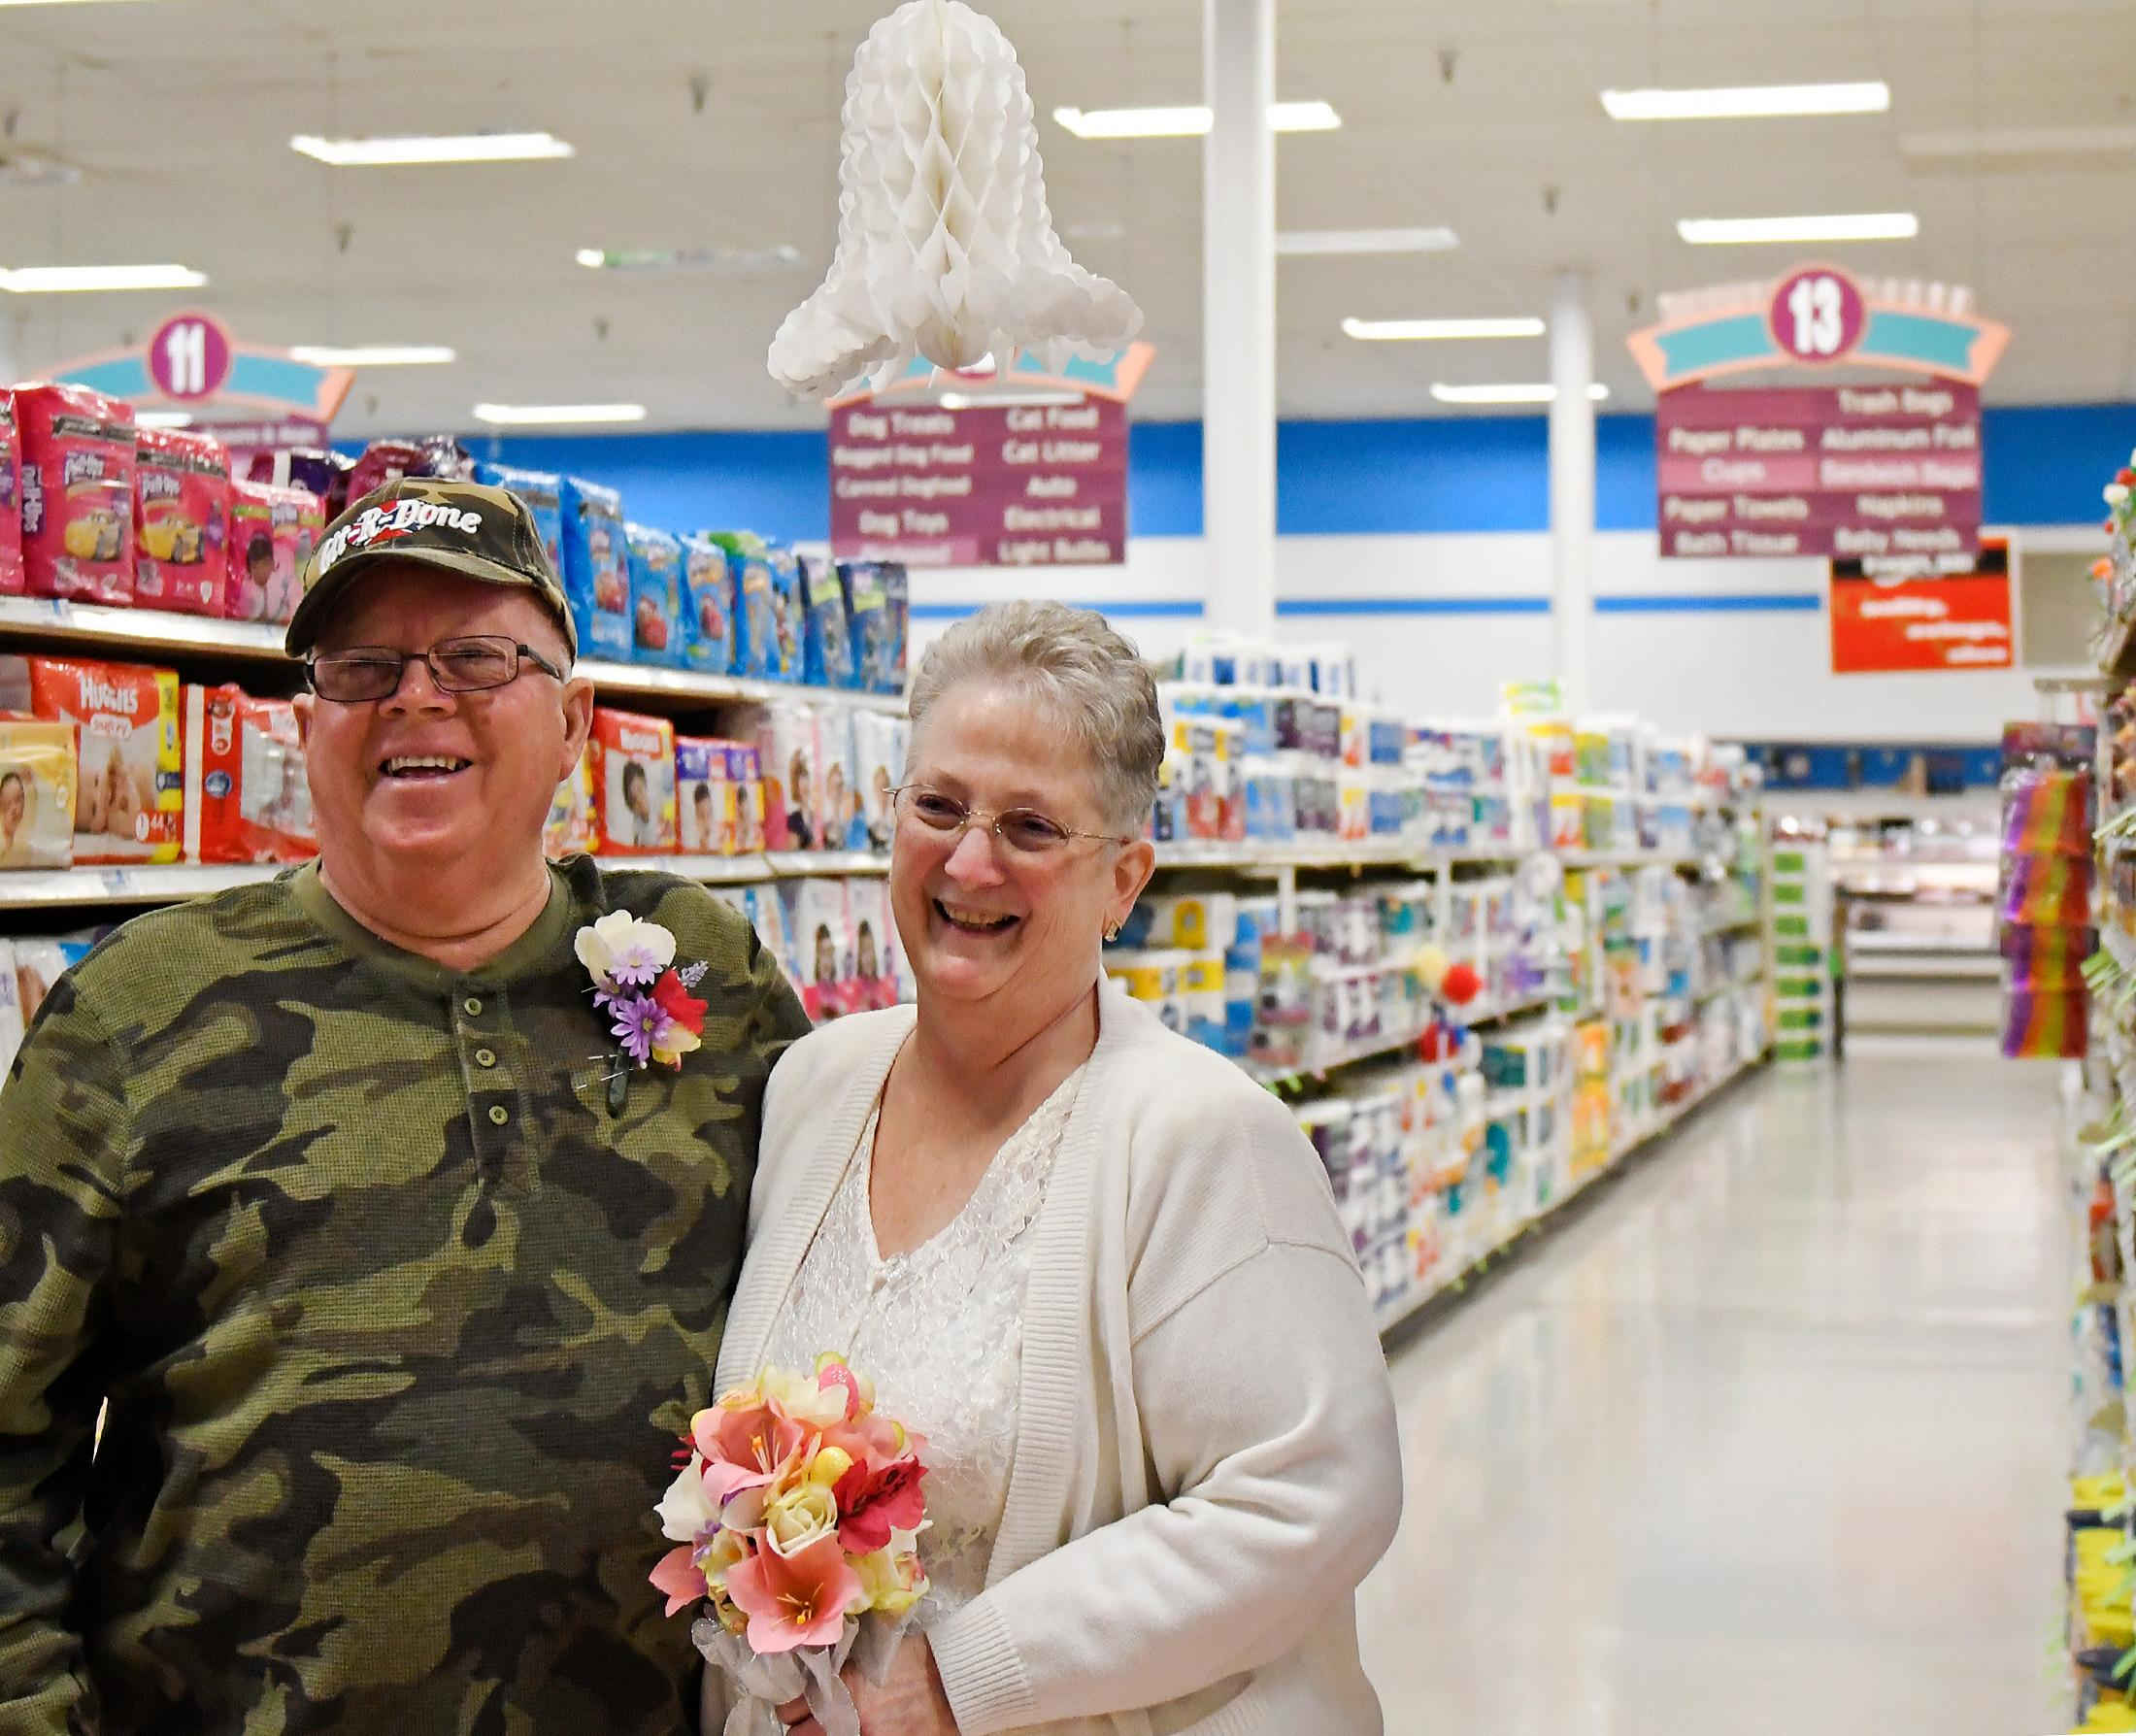 In this April 1, 2018 photo, Larry Spiering and Becky Smith pose for a photo where they held their wedding ceremony on Easter Sunday in aisle 13 of the Community Market in Lower Burrell, Pa. Smith said she was working at the supermarket when Spiering walked up and gave her a piece of paper with his name and phone number on it. She said it was only fitting that they married in the aisle where they met. (Jack Fordyce/Pittsburgh Tribune-Review via AP)